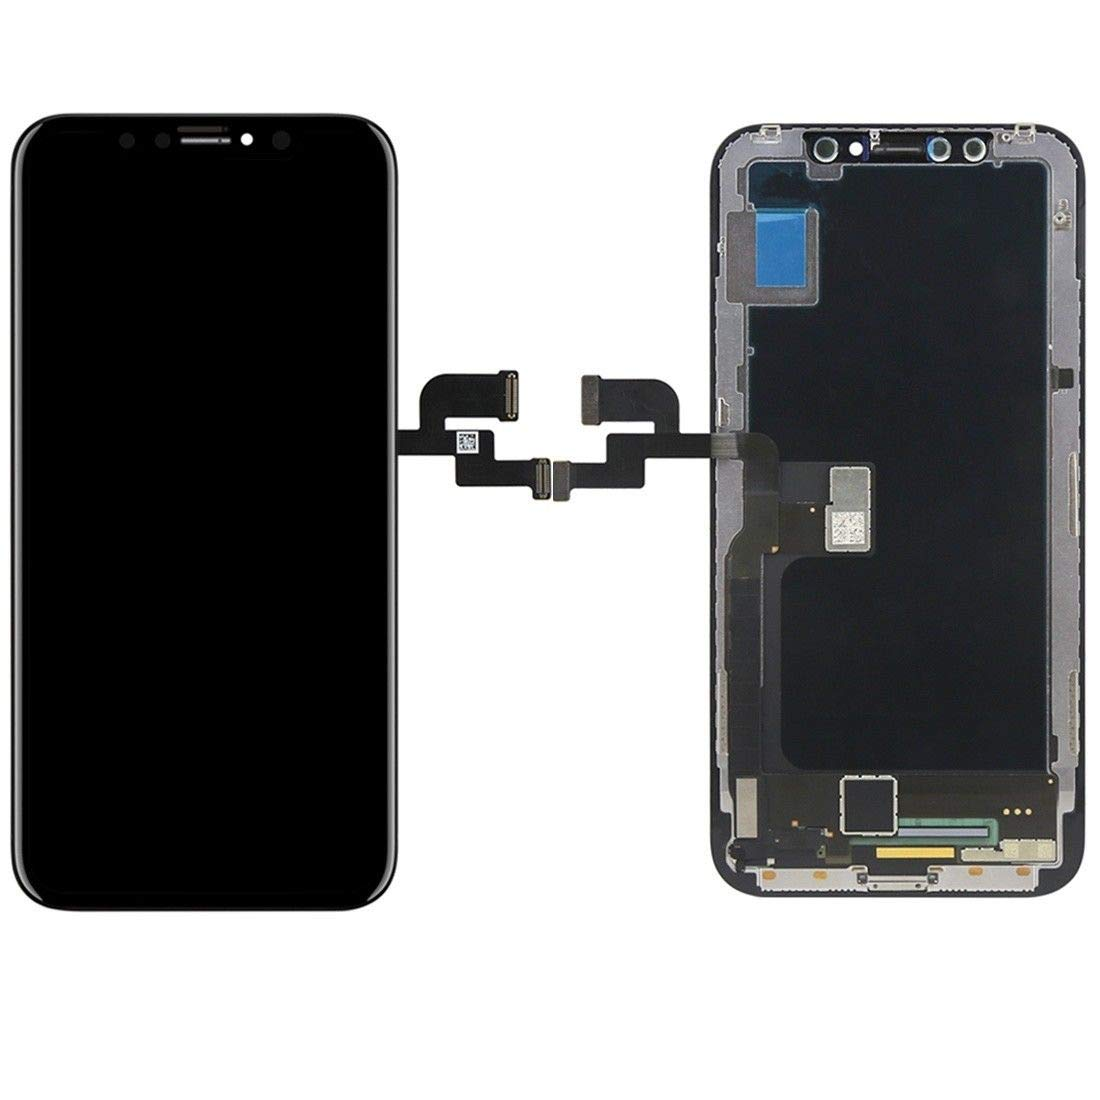 passionTR Screen Replacement fits iPhone X 5.8 inch Flexible OLED LCD Screen Display digitizer Assembly Full Complete Front Glass 3D Touch Screen (Black) by Fixing_DIY